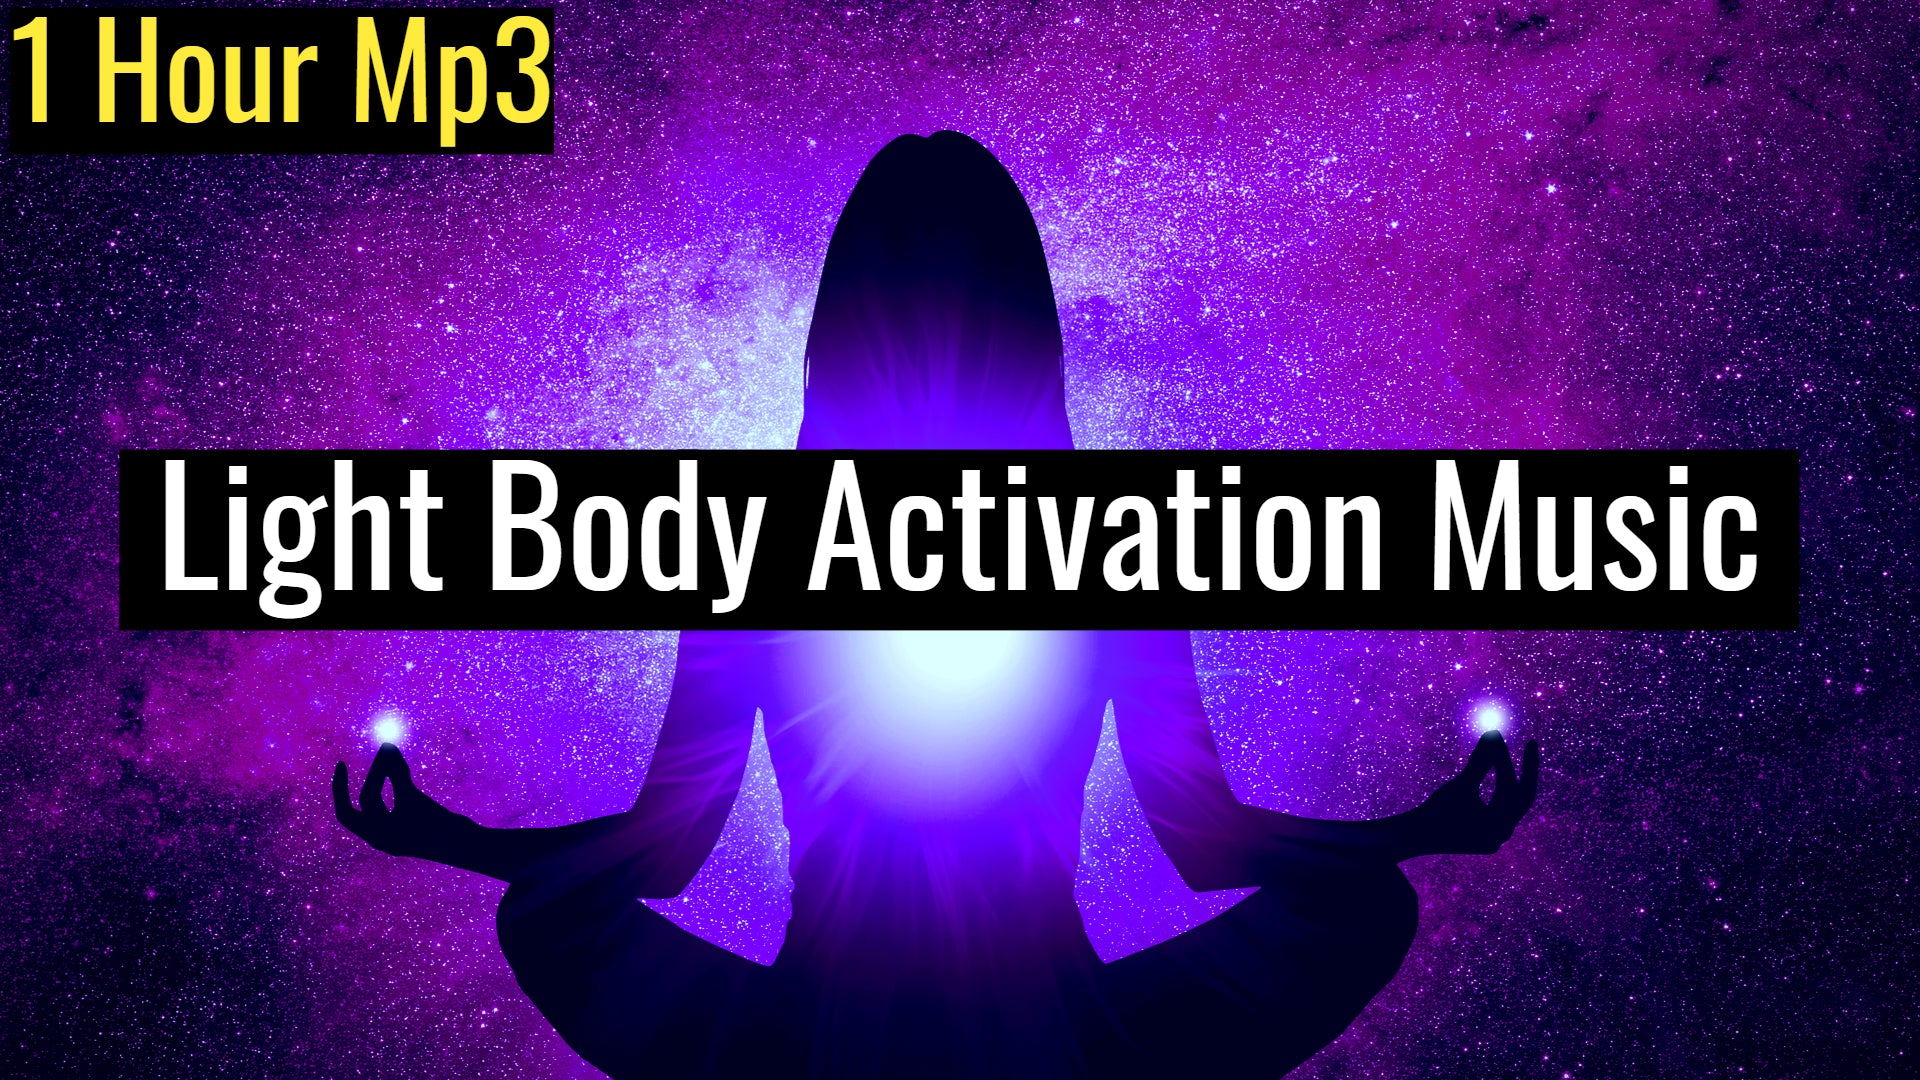 Light Body Activation to Achieve Ascension (Raise Your Vibration) | 528Hz Powerful Awakening Music (1 Hour Track)